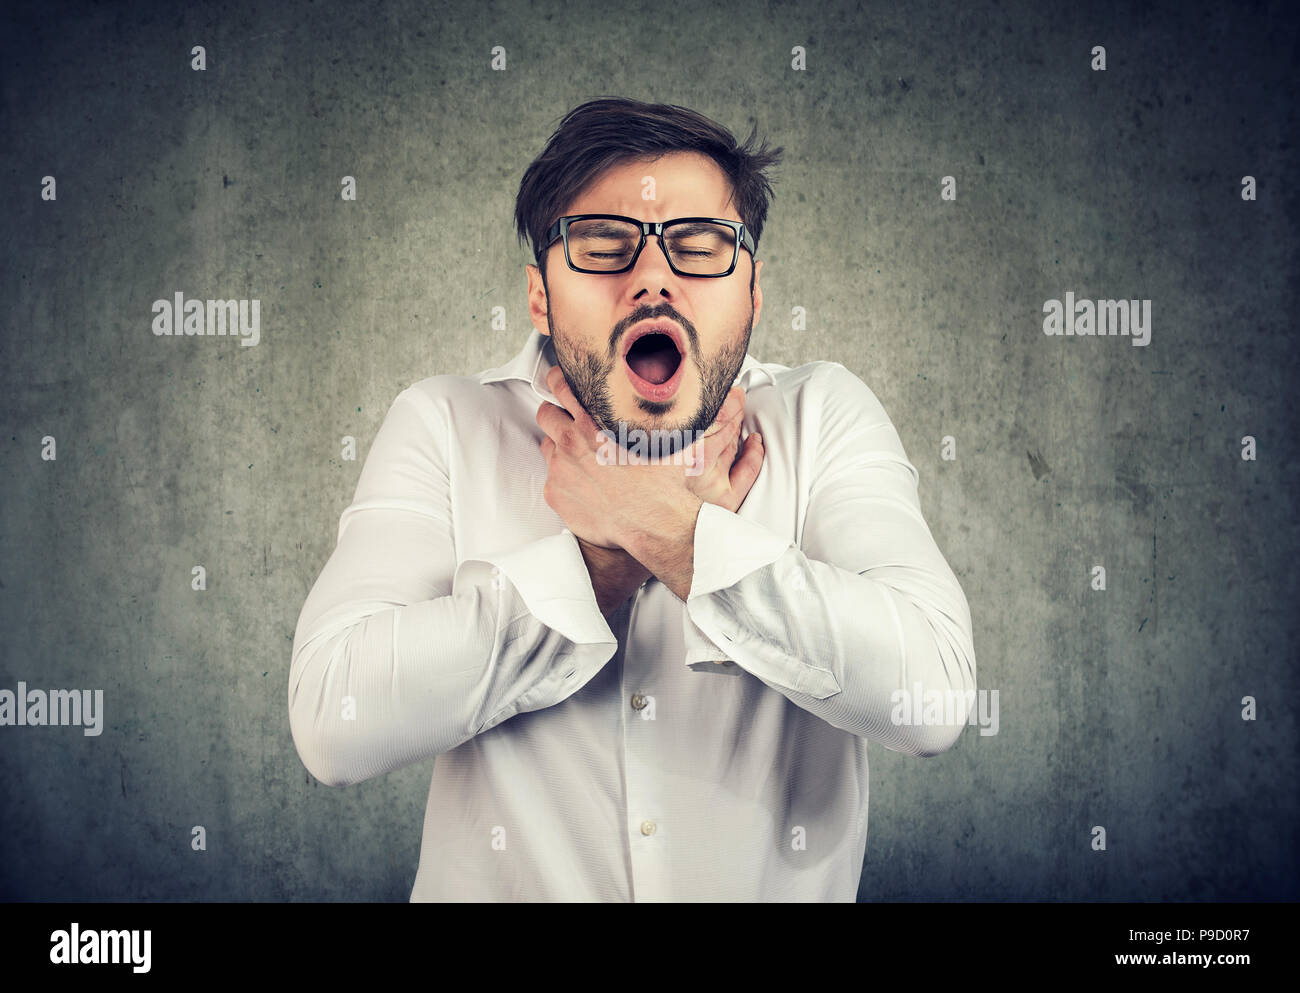 Young man having asthma attack or choking can't breath Stock Photo